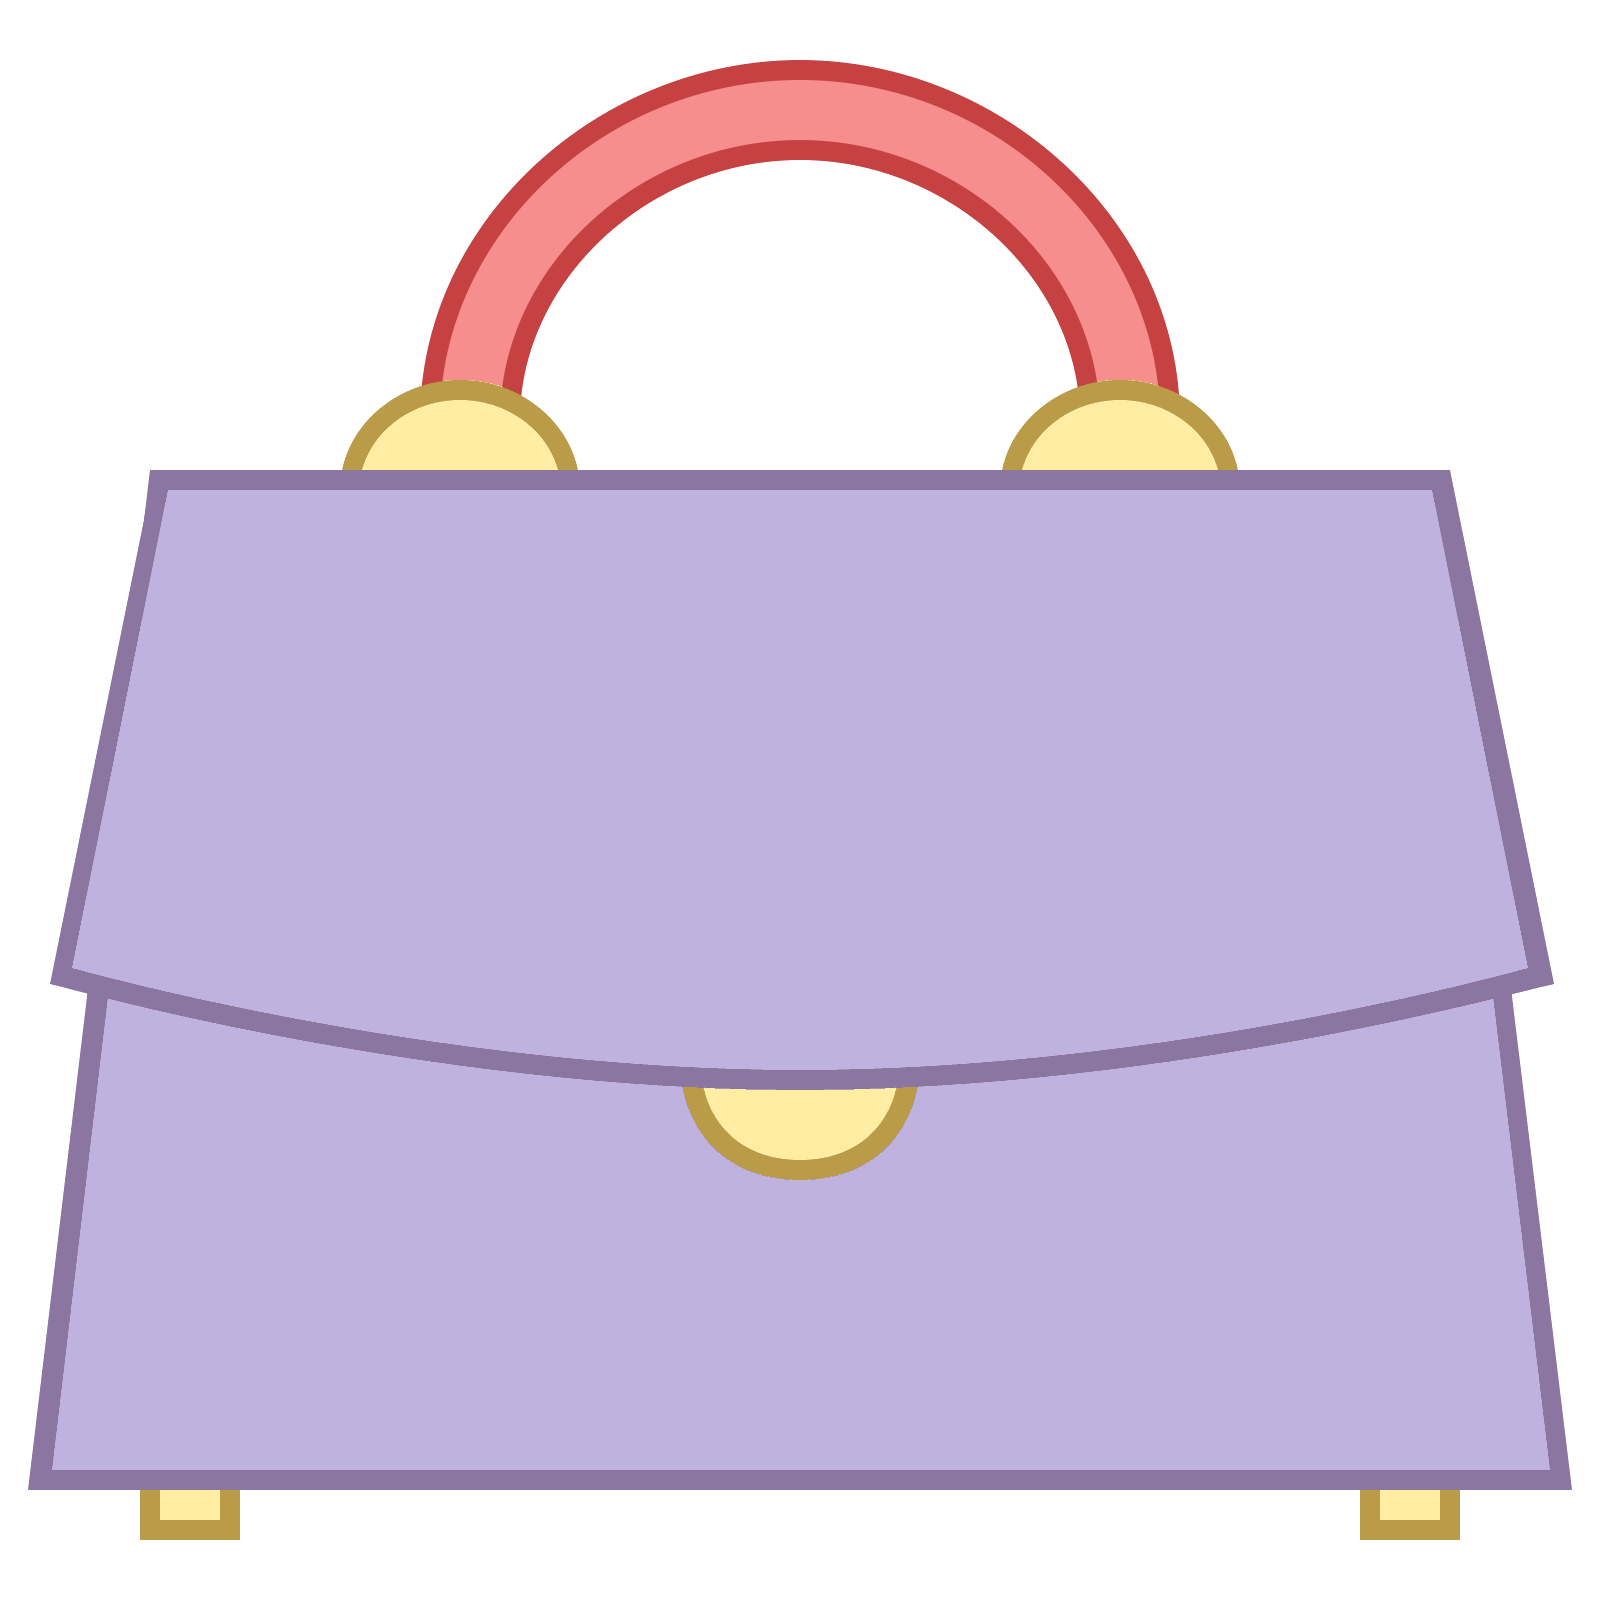 Clip bag handle. Png icon there